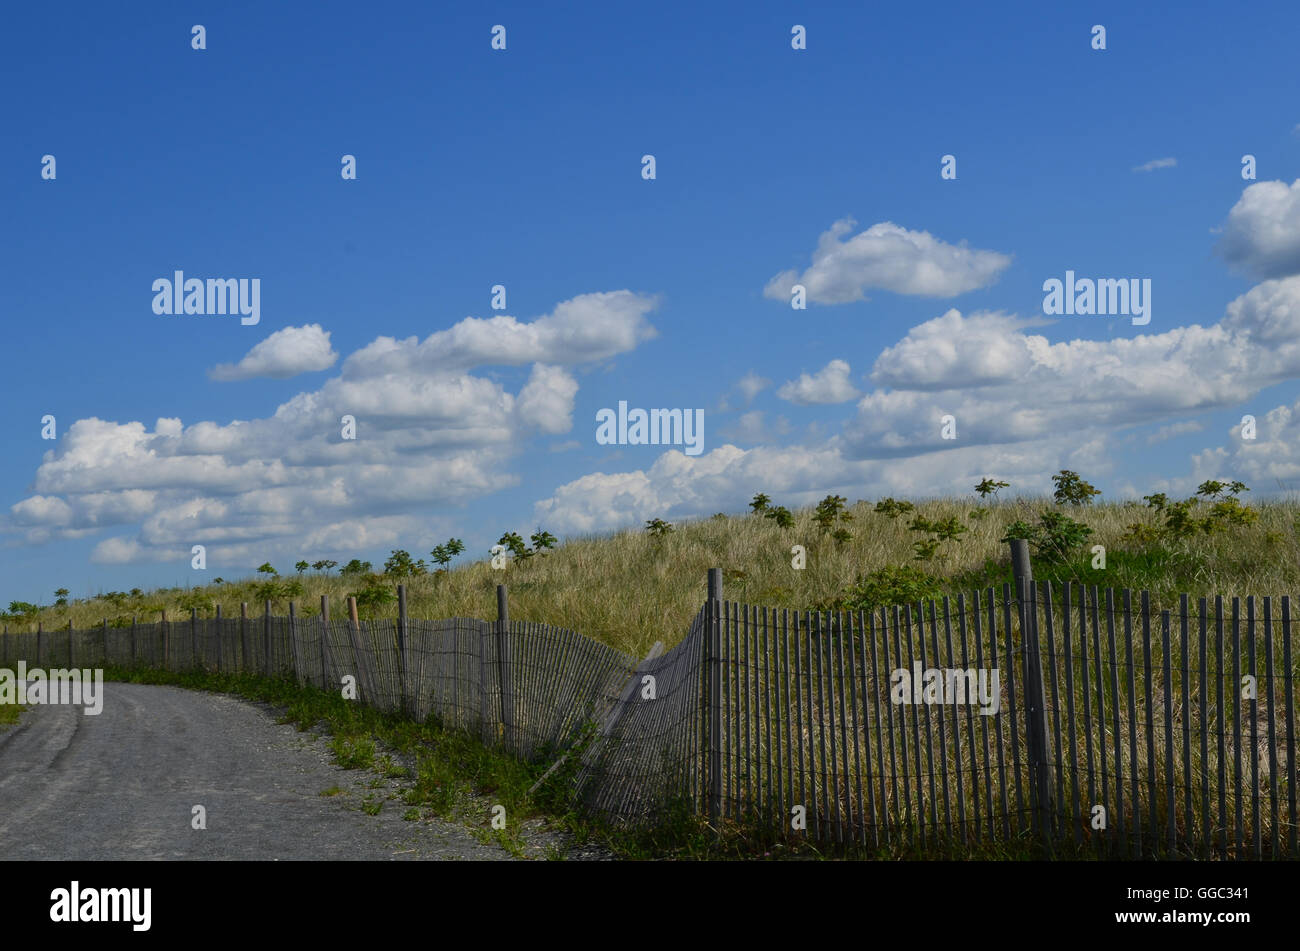 Hiking road with beach fencing there is also long beach grass on Spectacle Island. - Stock Image